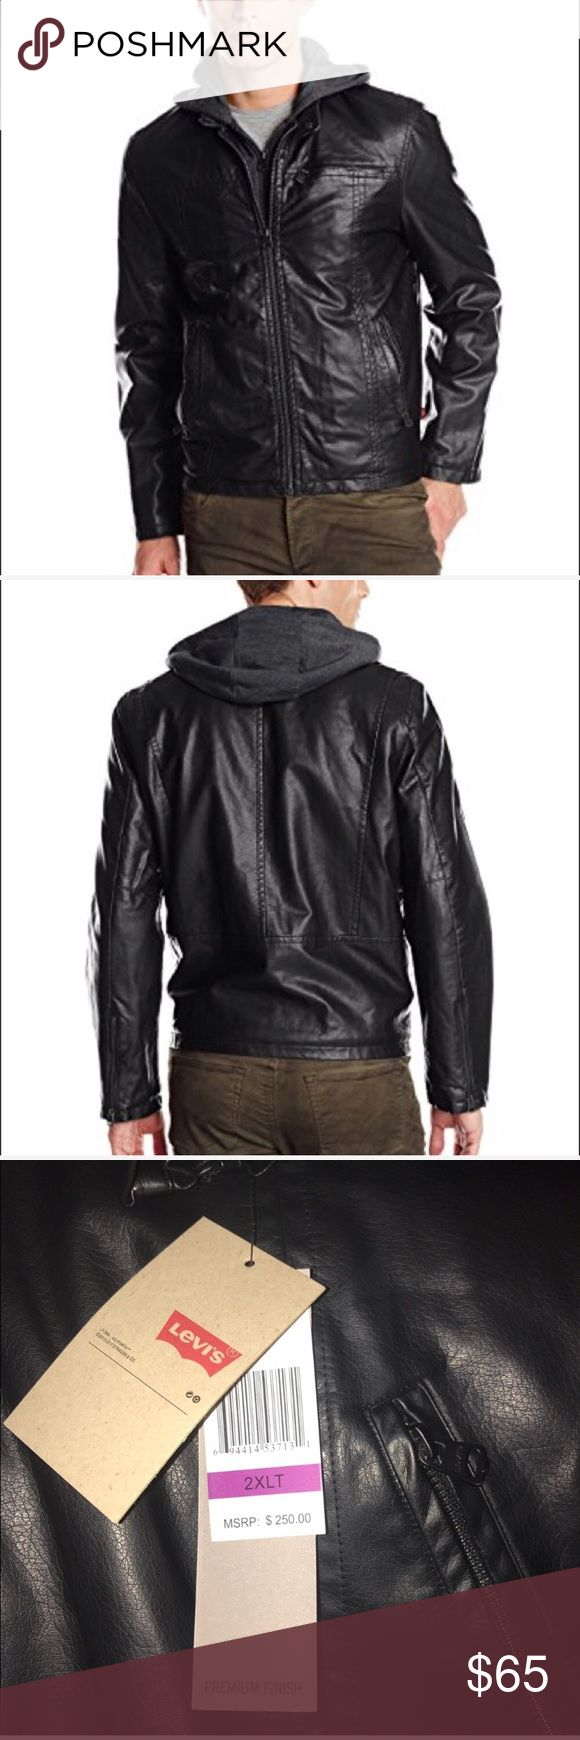 Men's Big & Tall Leather Racer Jacket 2X Tall New with tags Size 2XT Features 100% Other Fibers Imported Polyester lining Hand Wash Zip-front jacket featuring jersey bib with hood Zippered chest and hand pockets Fleece lining Levi's Jackets & Coats Bomber & Varsity